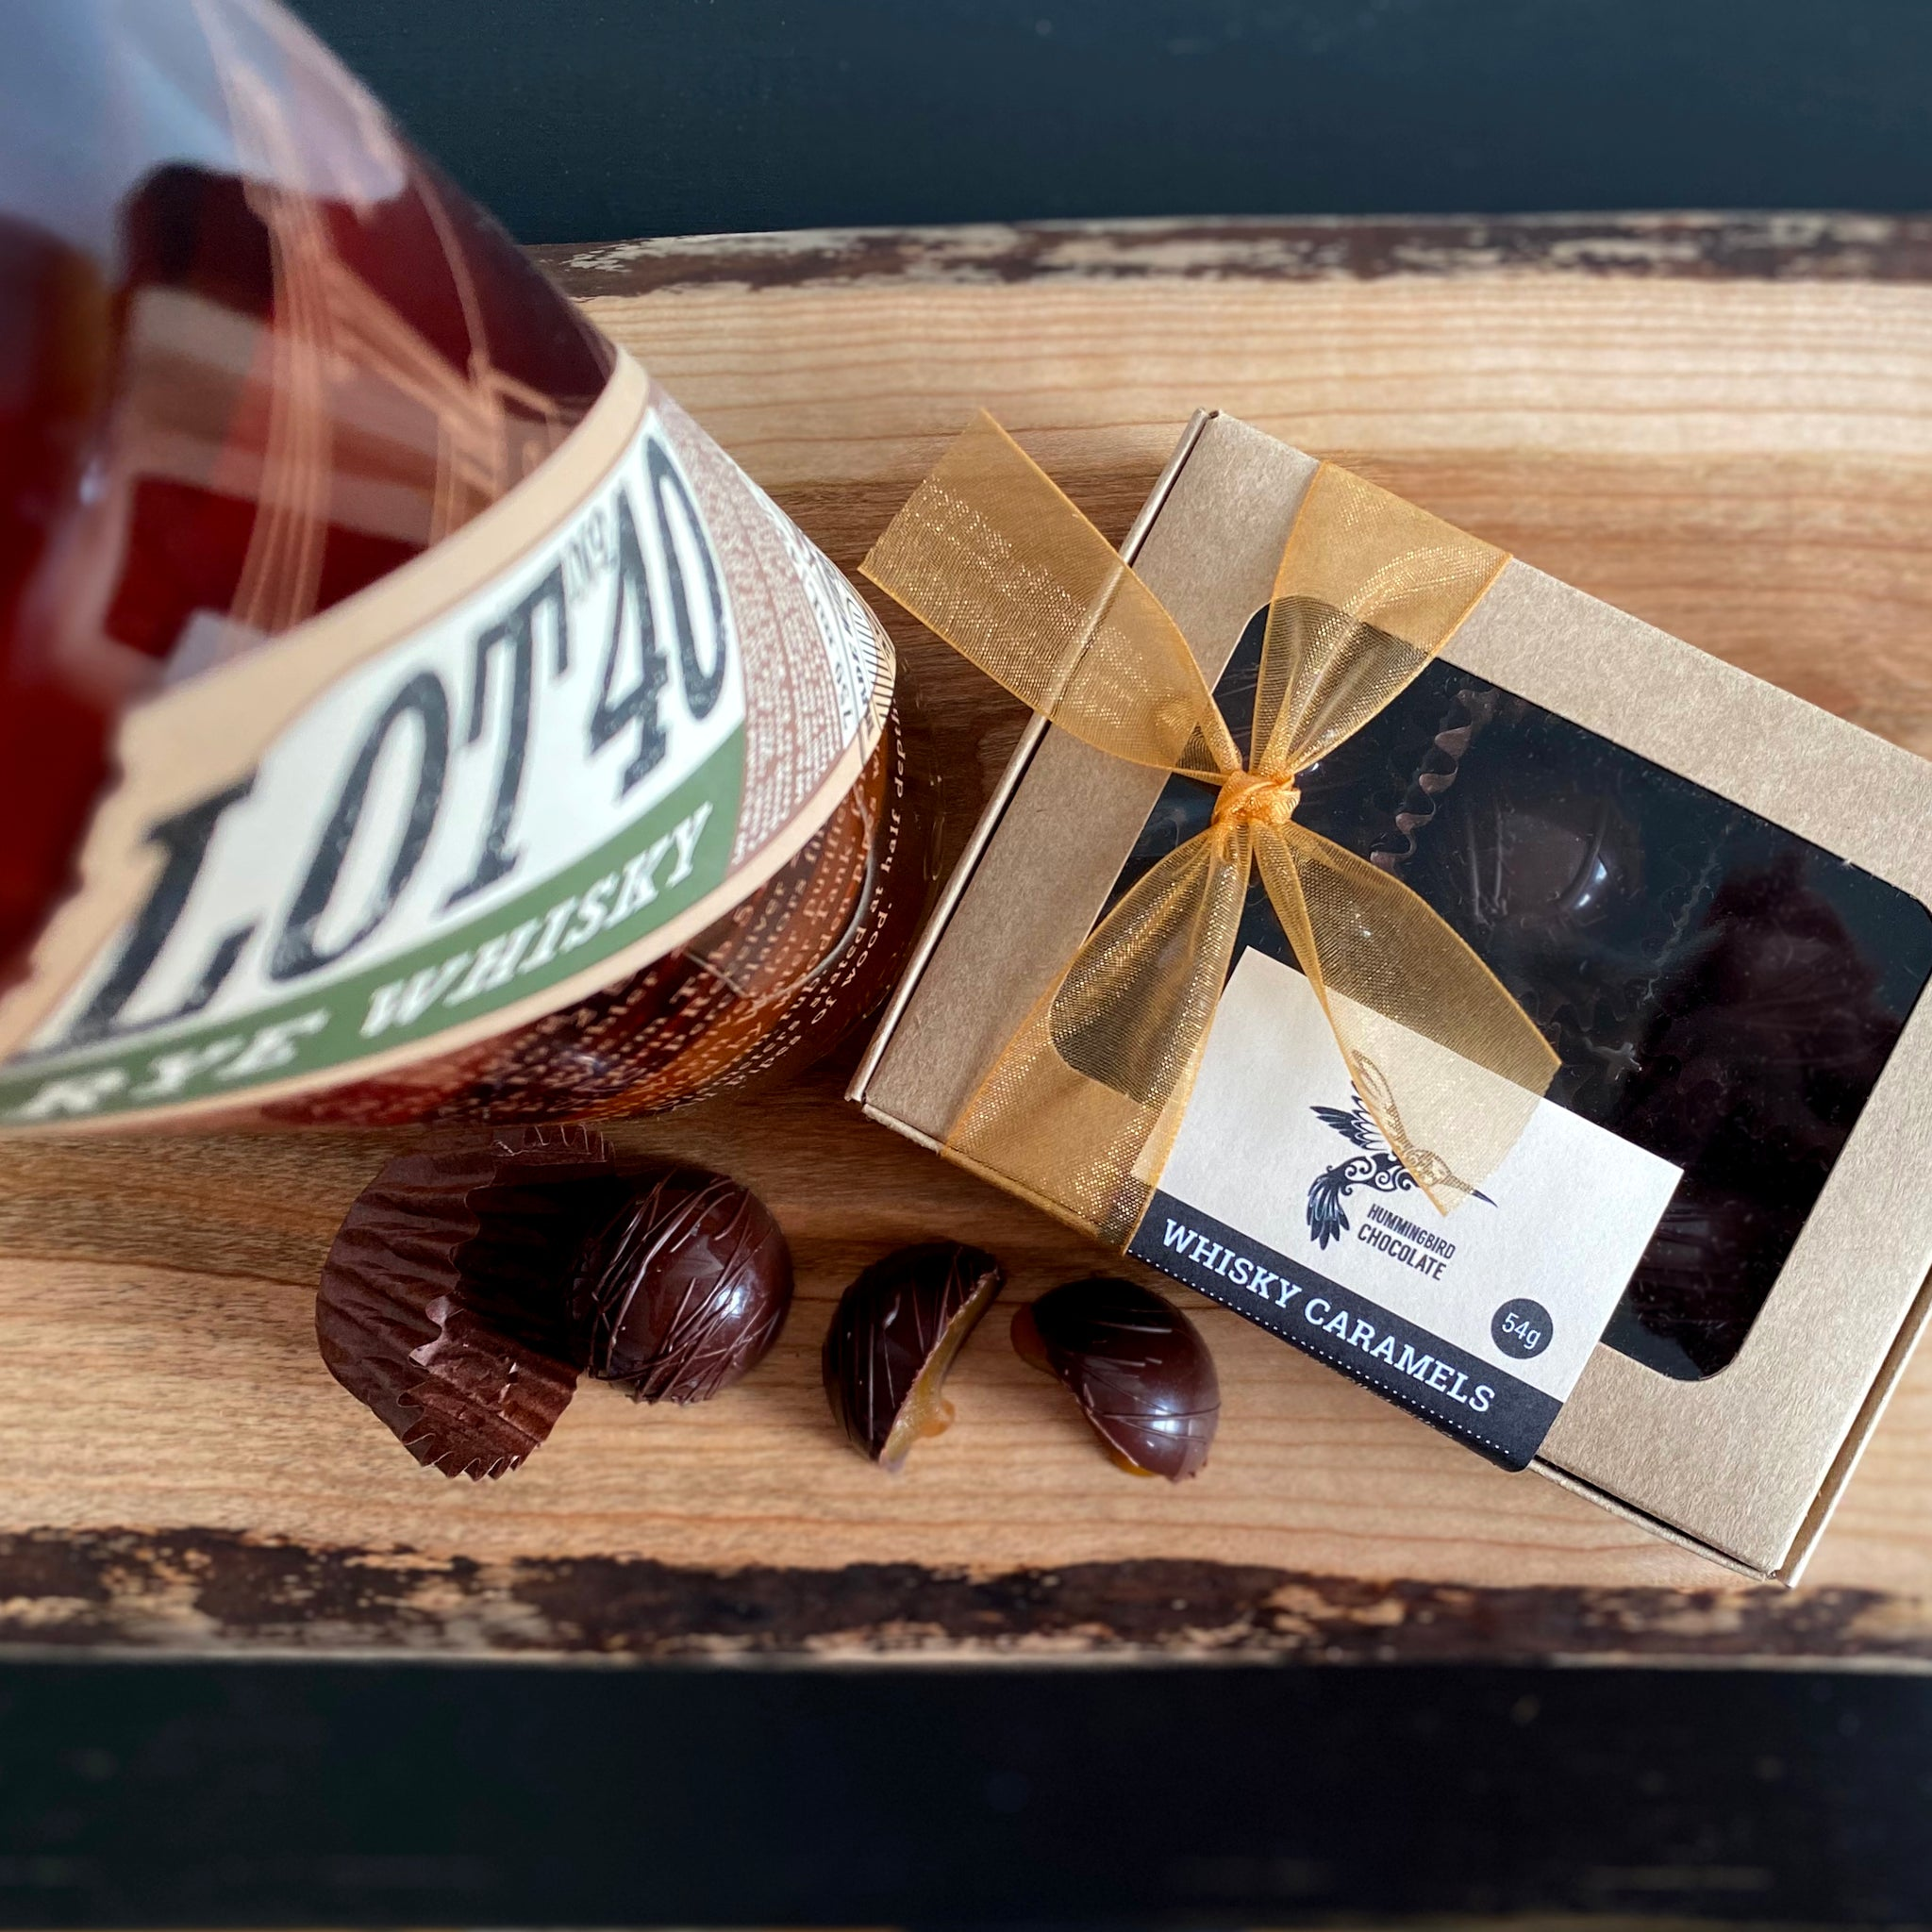 Box of dark chocolate whisky caramels, next to bottle of Lot No. 40 whisky,